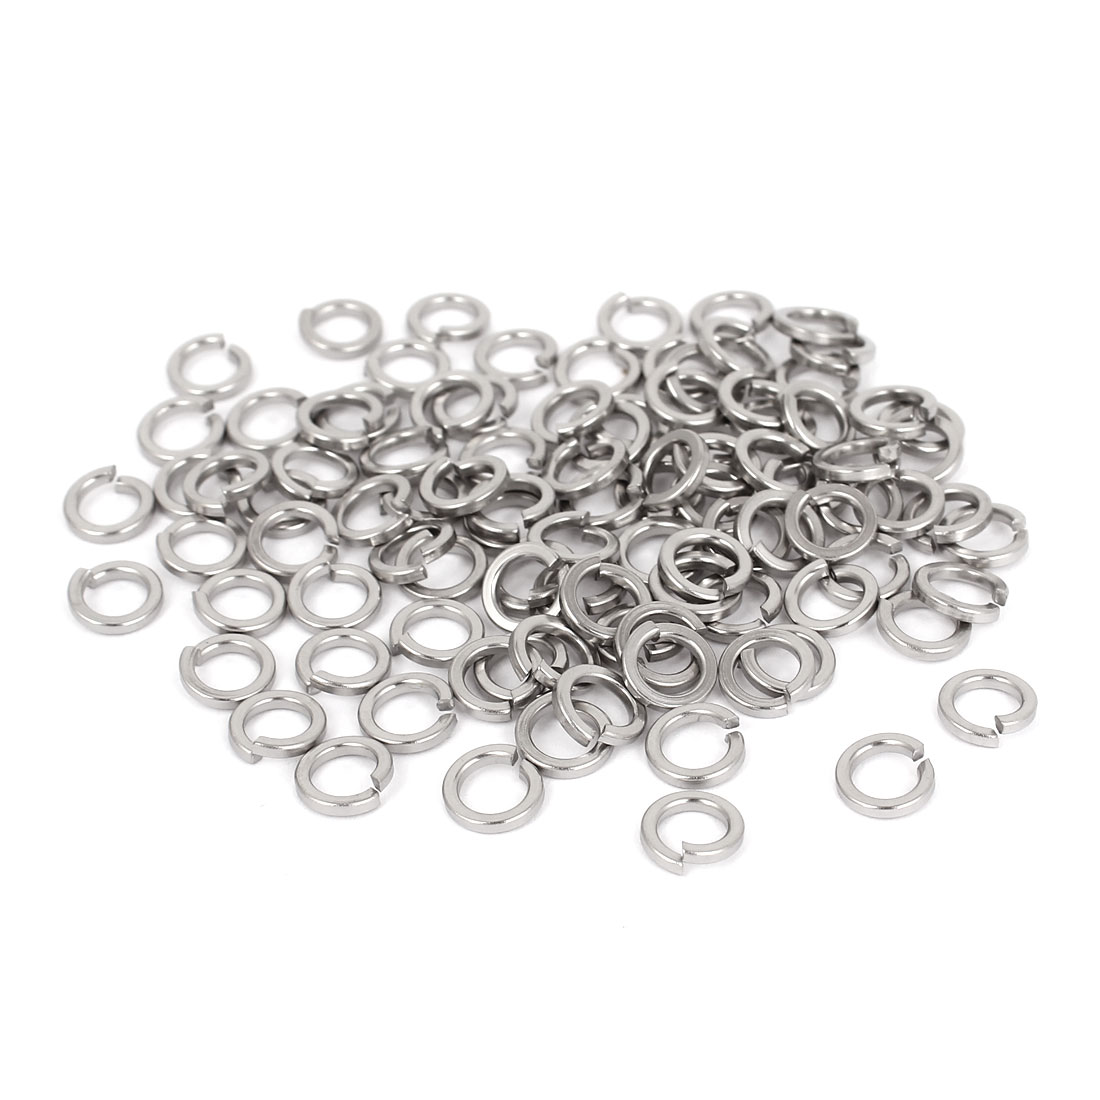 "100pcs 316 Stainless Steel Split Lock Spring Washers 3/16"" Screw Spacer Pad"